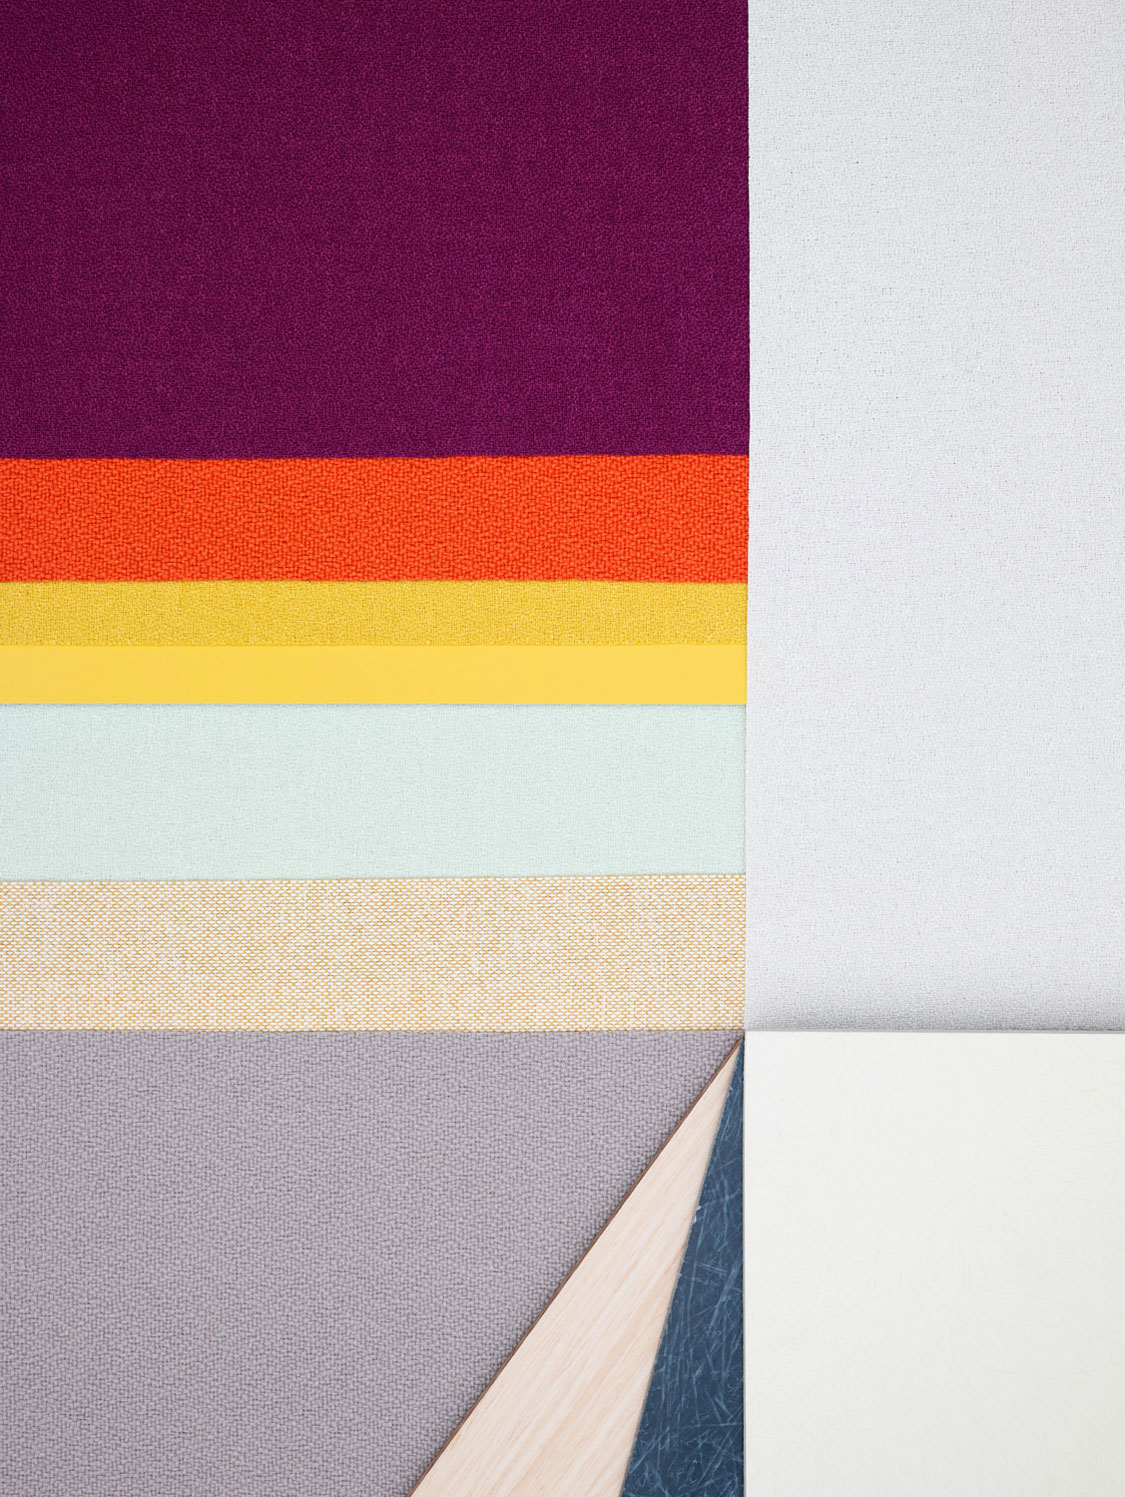 Herman Miller's Refreshed Palette by Carl Kleiner | Yellowtrace